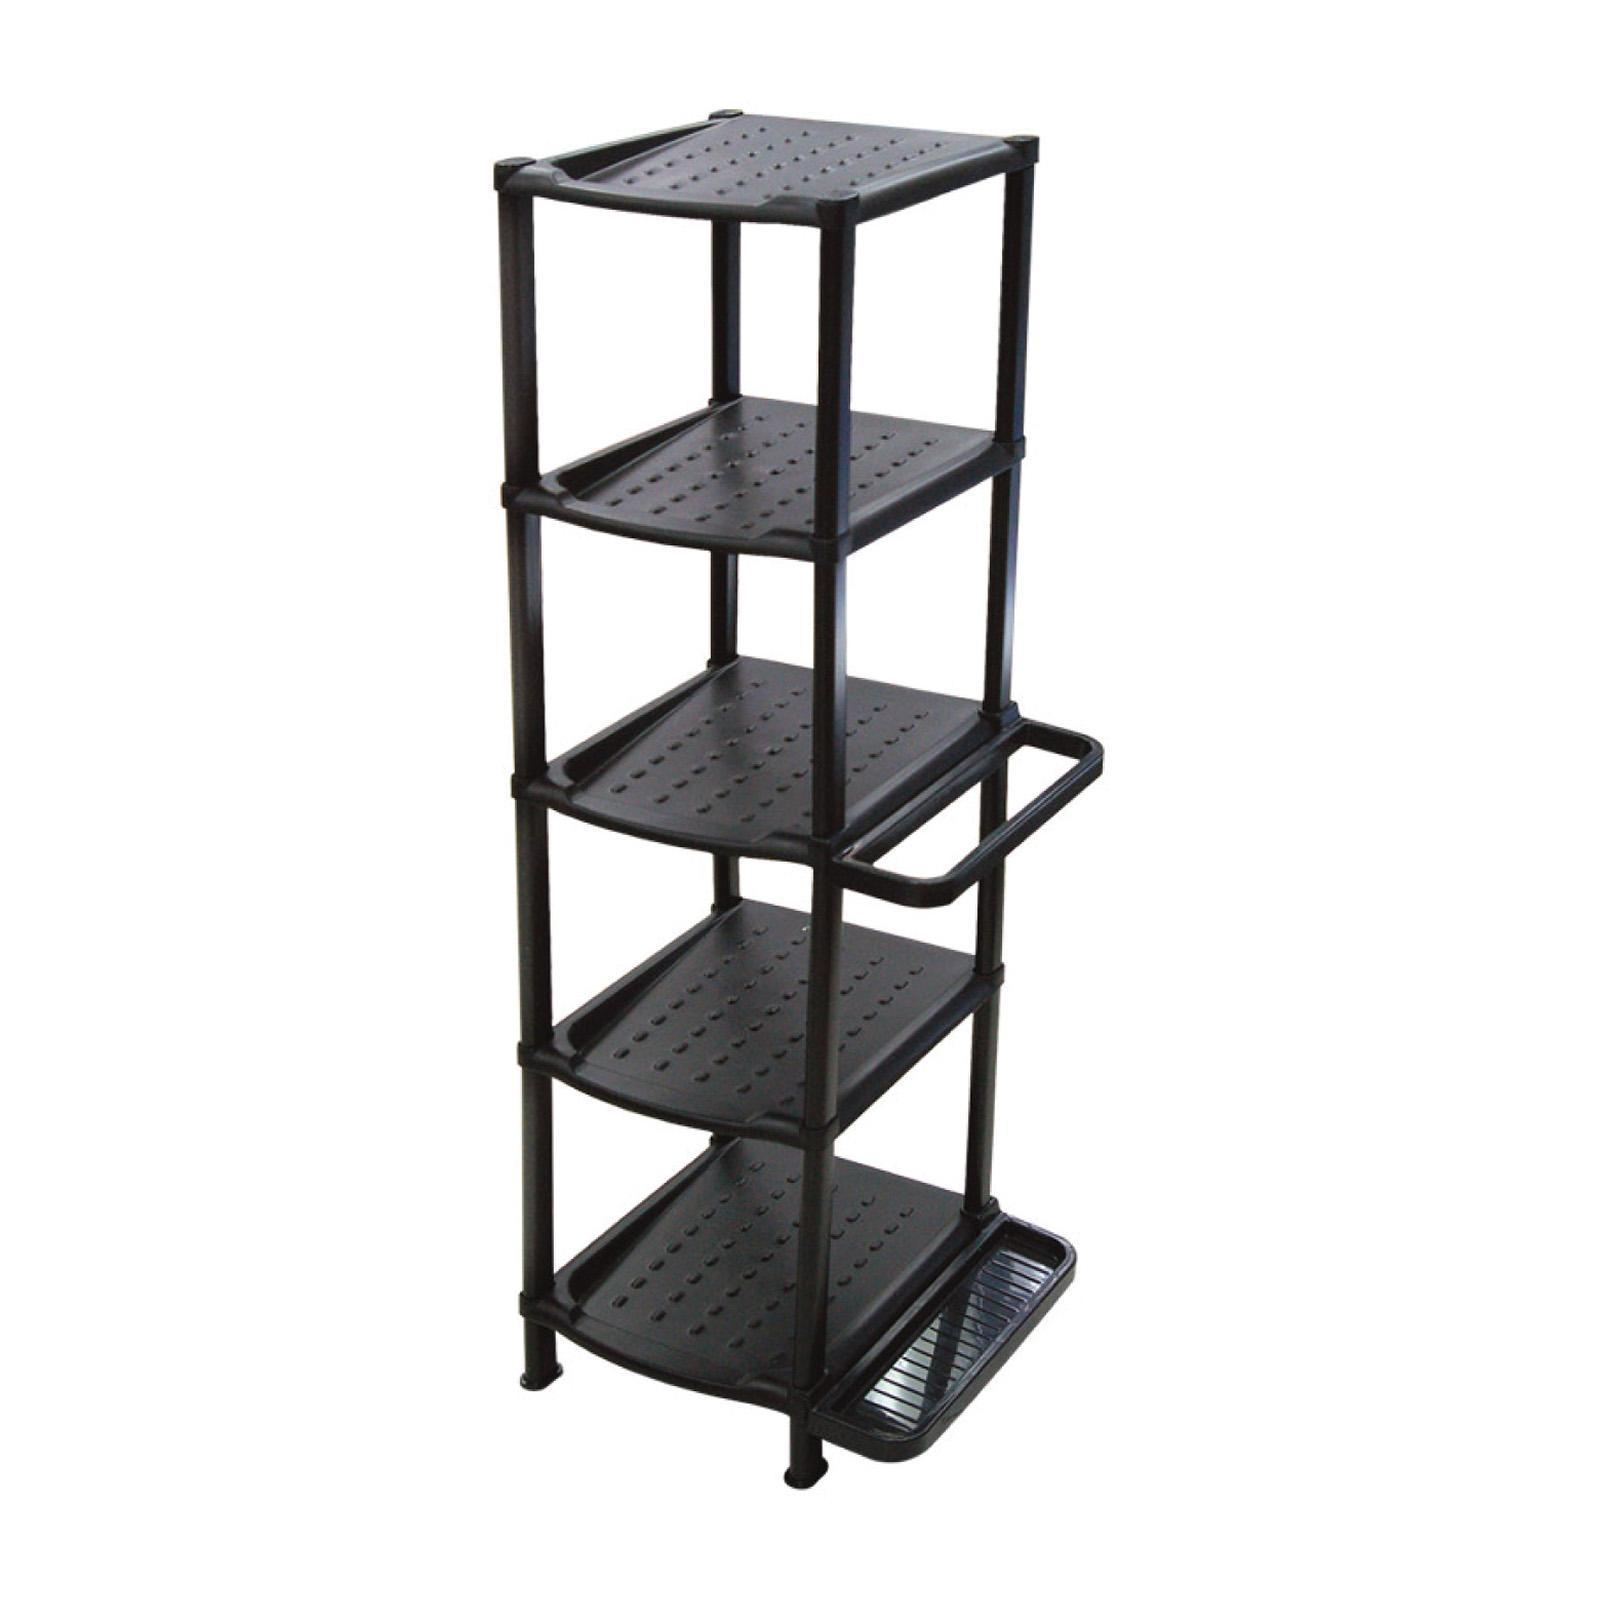 ALGO Multi Shoe Rack 5 Tier W/ Umbrella Holder